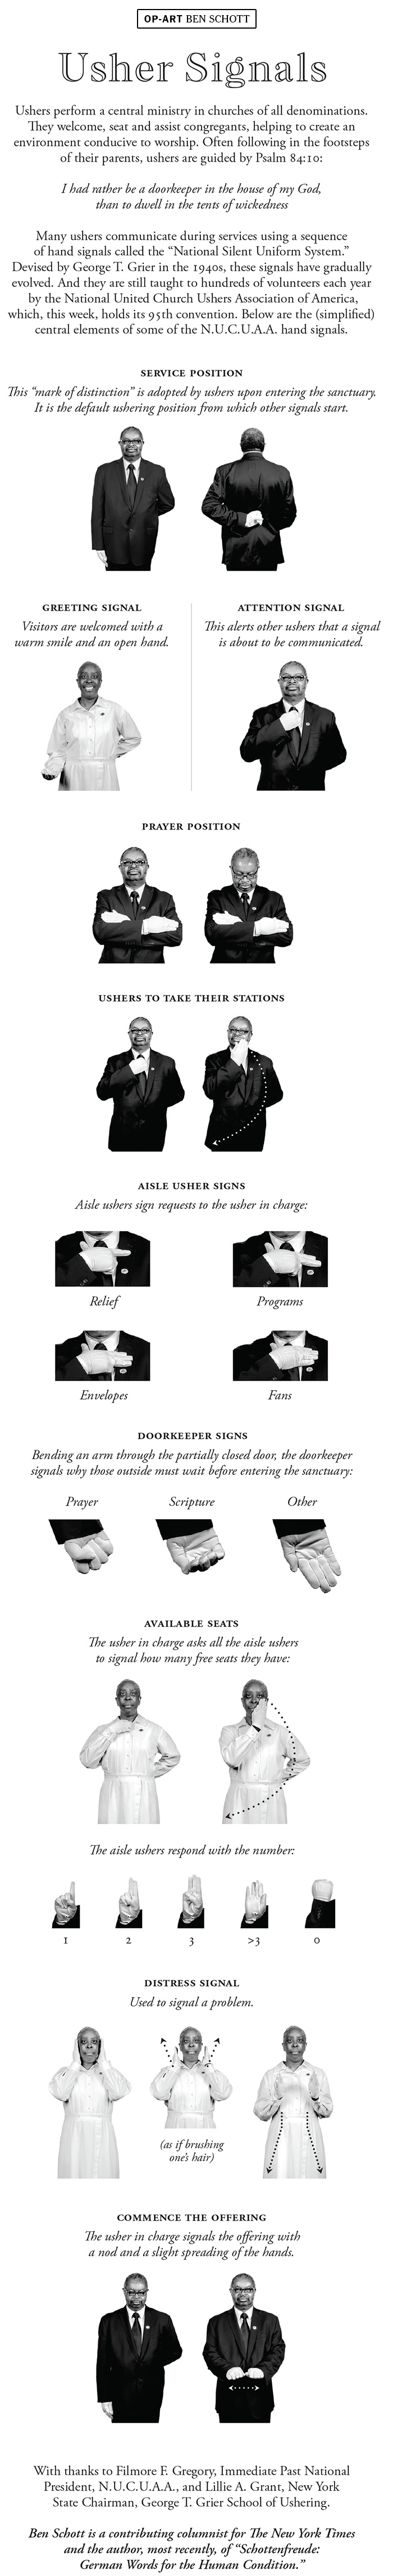 Opinion | Usher Signals - The New York Times - Free Printable Church Usher Hand Signals